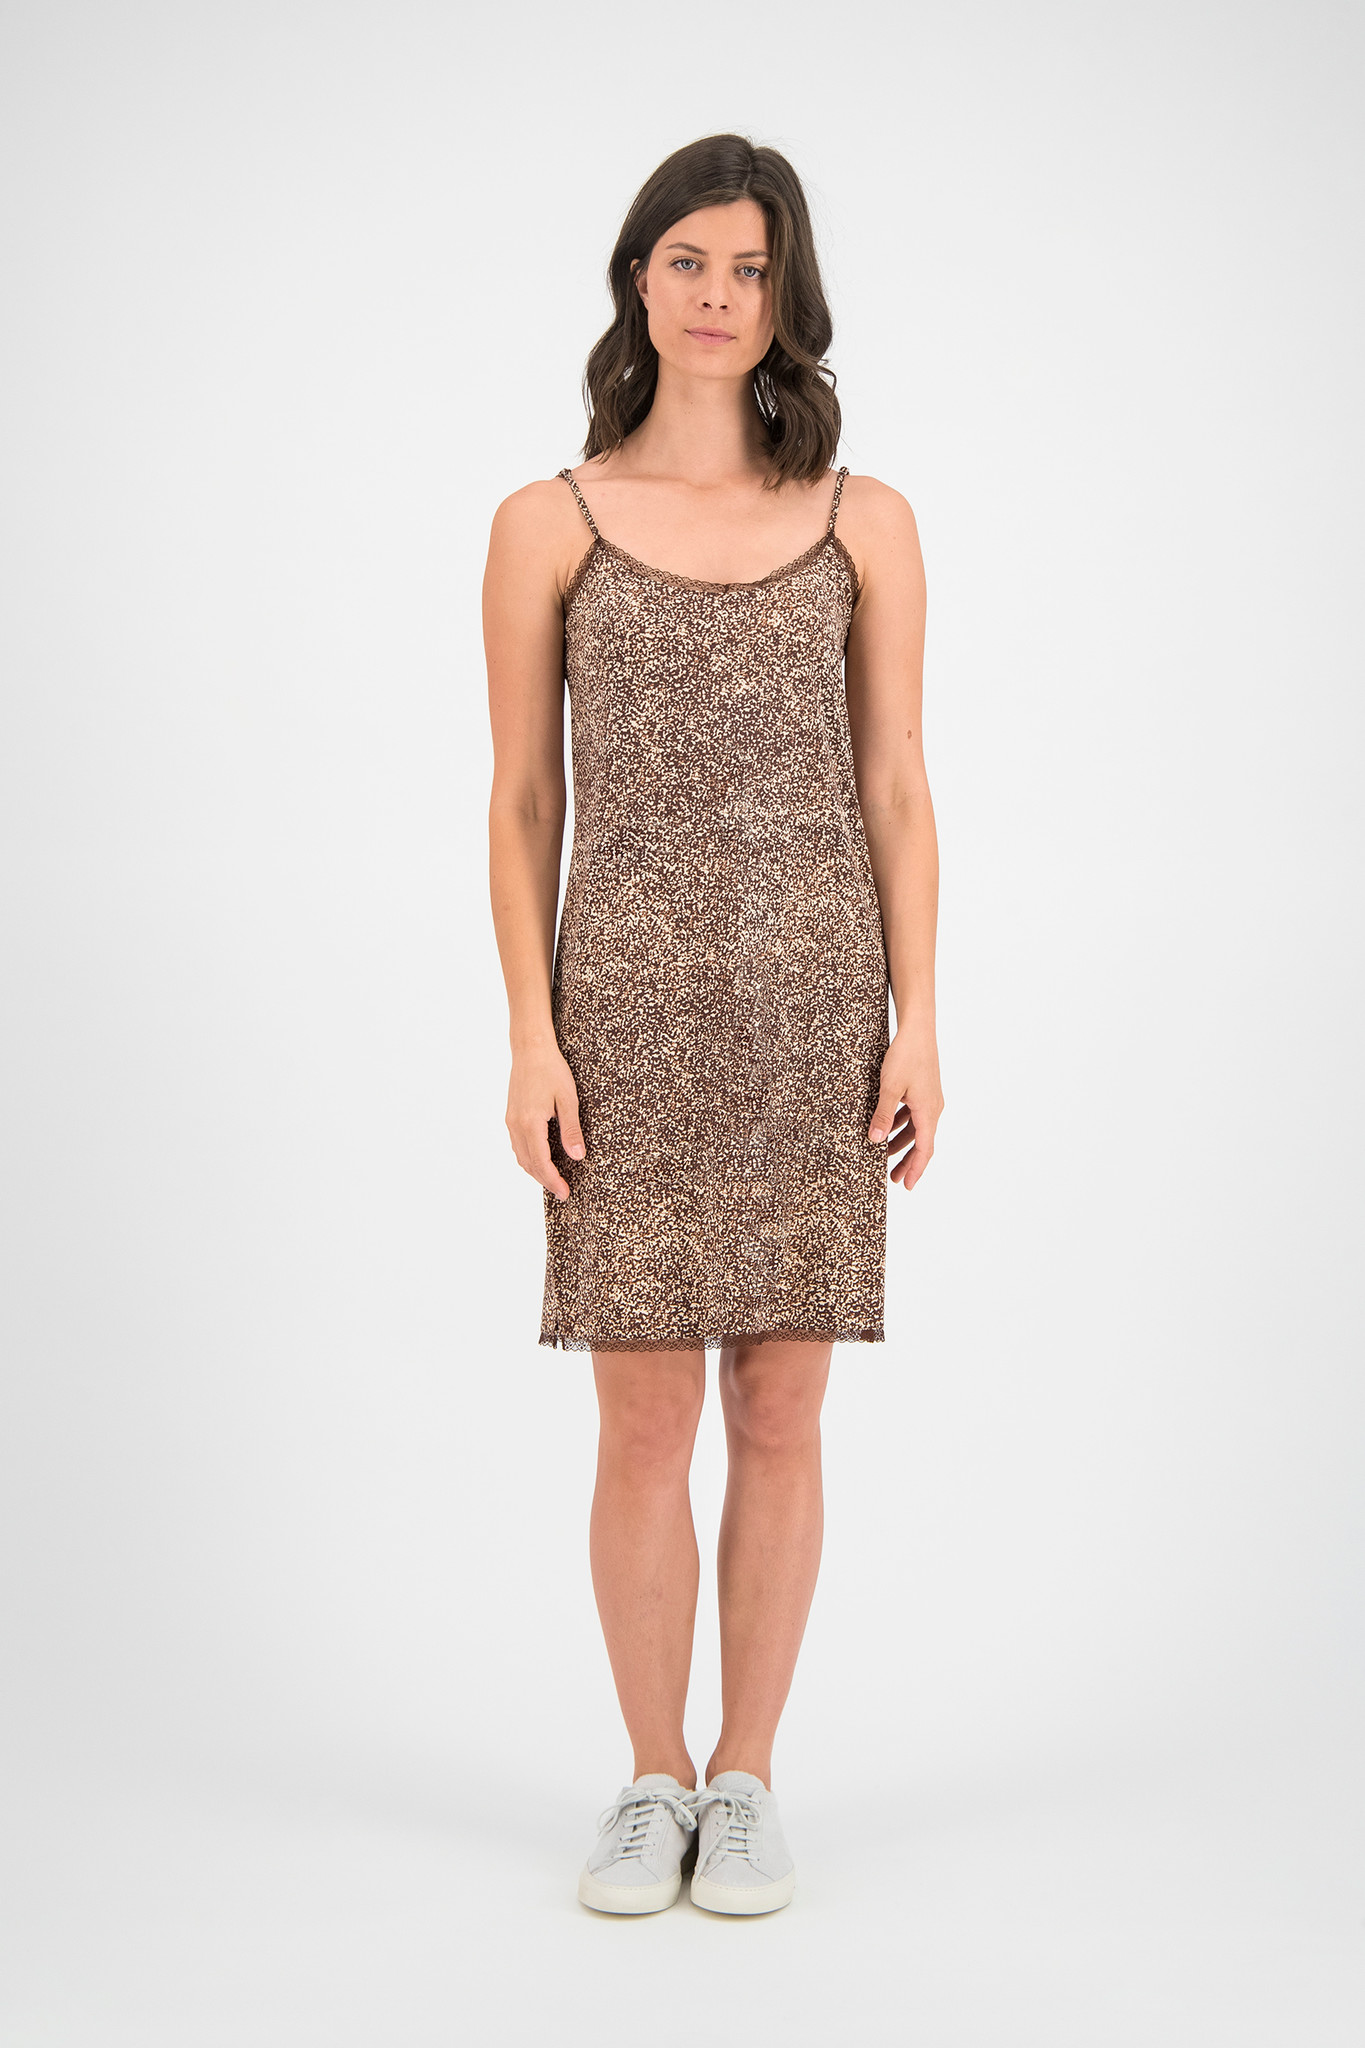 SYLVER Gravel Silky Jersey Slip Dress - Brown